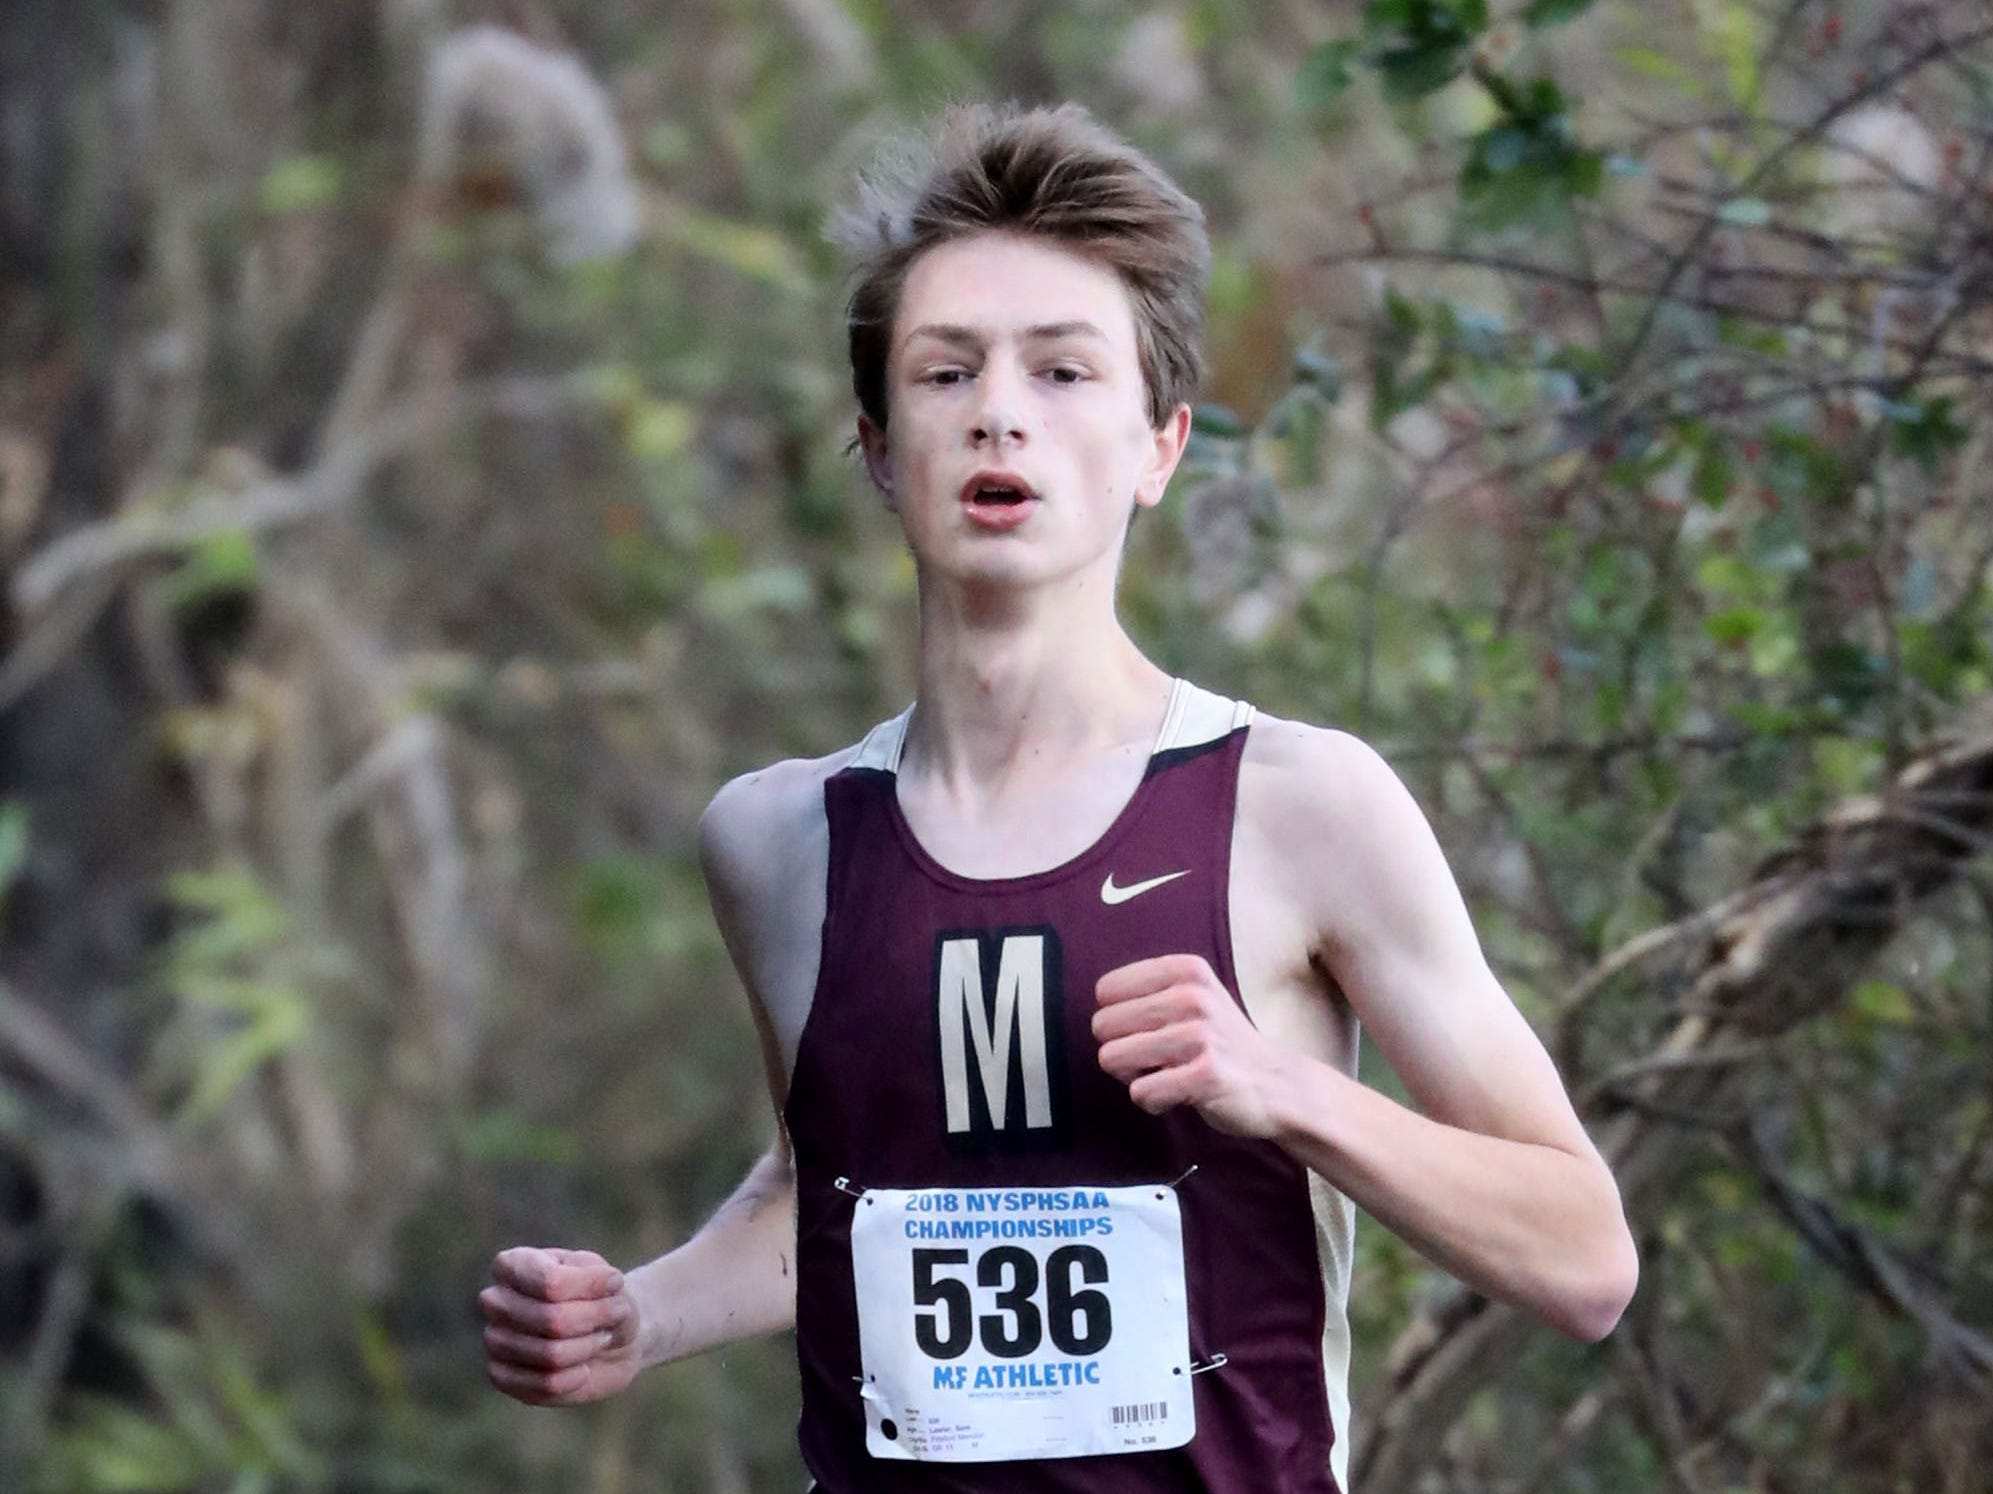 Sam Lawler from Pittsford Mendon, runs the boys Class B race during the 2018 NYSPHSAA Cross Country Championships at Sunken Meadow State Park in Kings Park on Nov. 10, 2018.